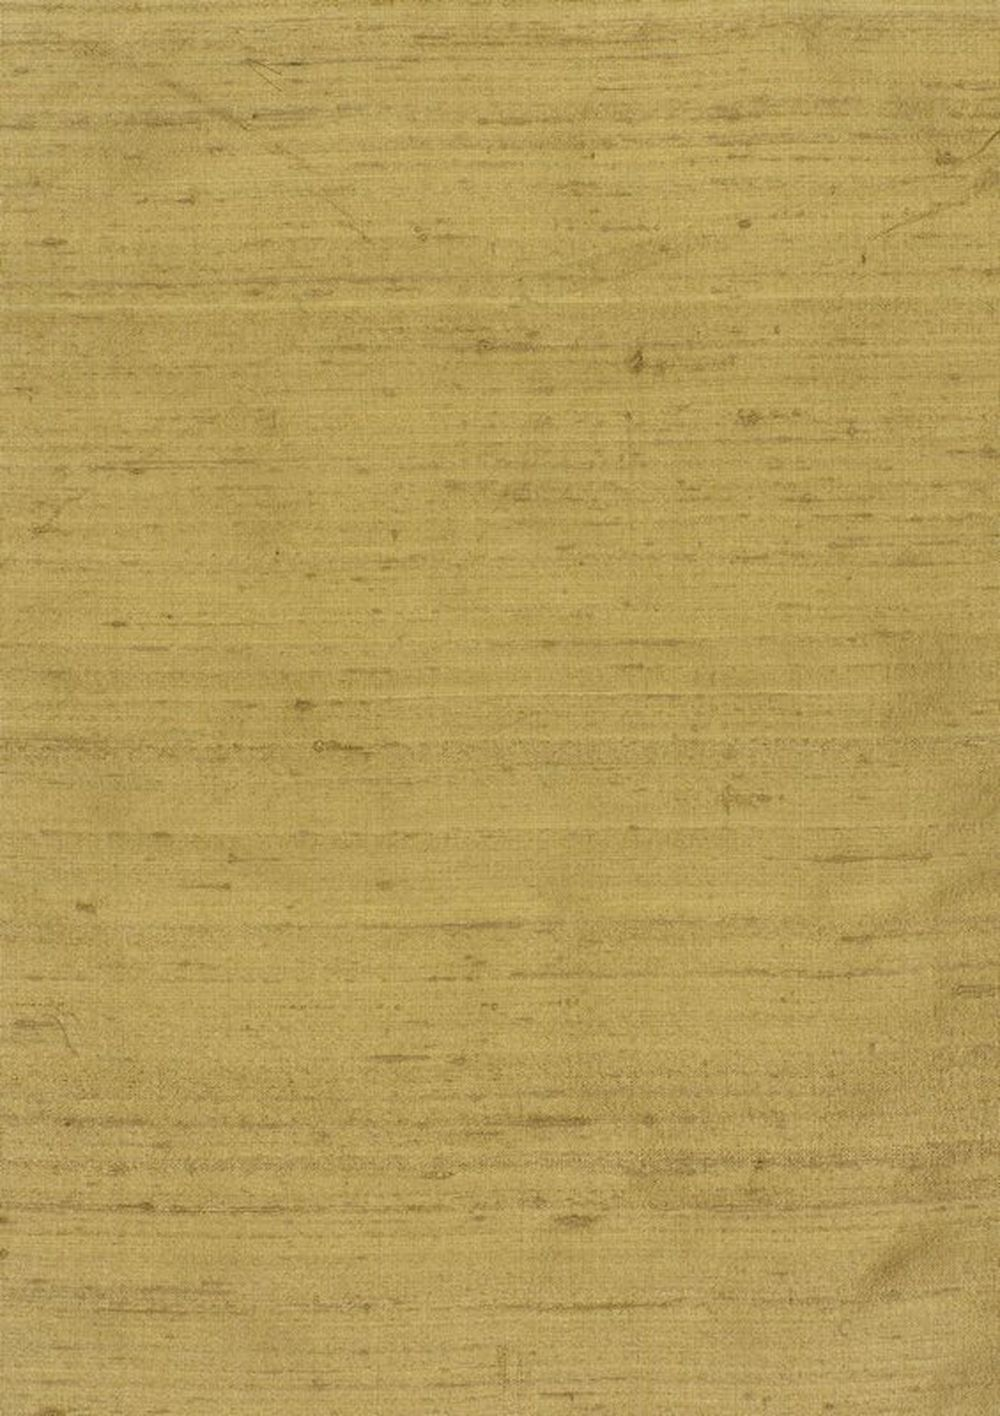 Photo of the fabric Luxury Marzipan-005 swatch by James Dunlop. Use for Drapery. Style of Plain